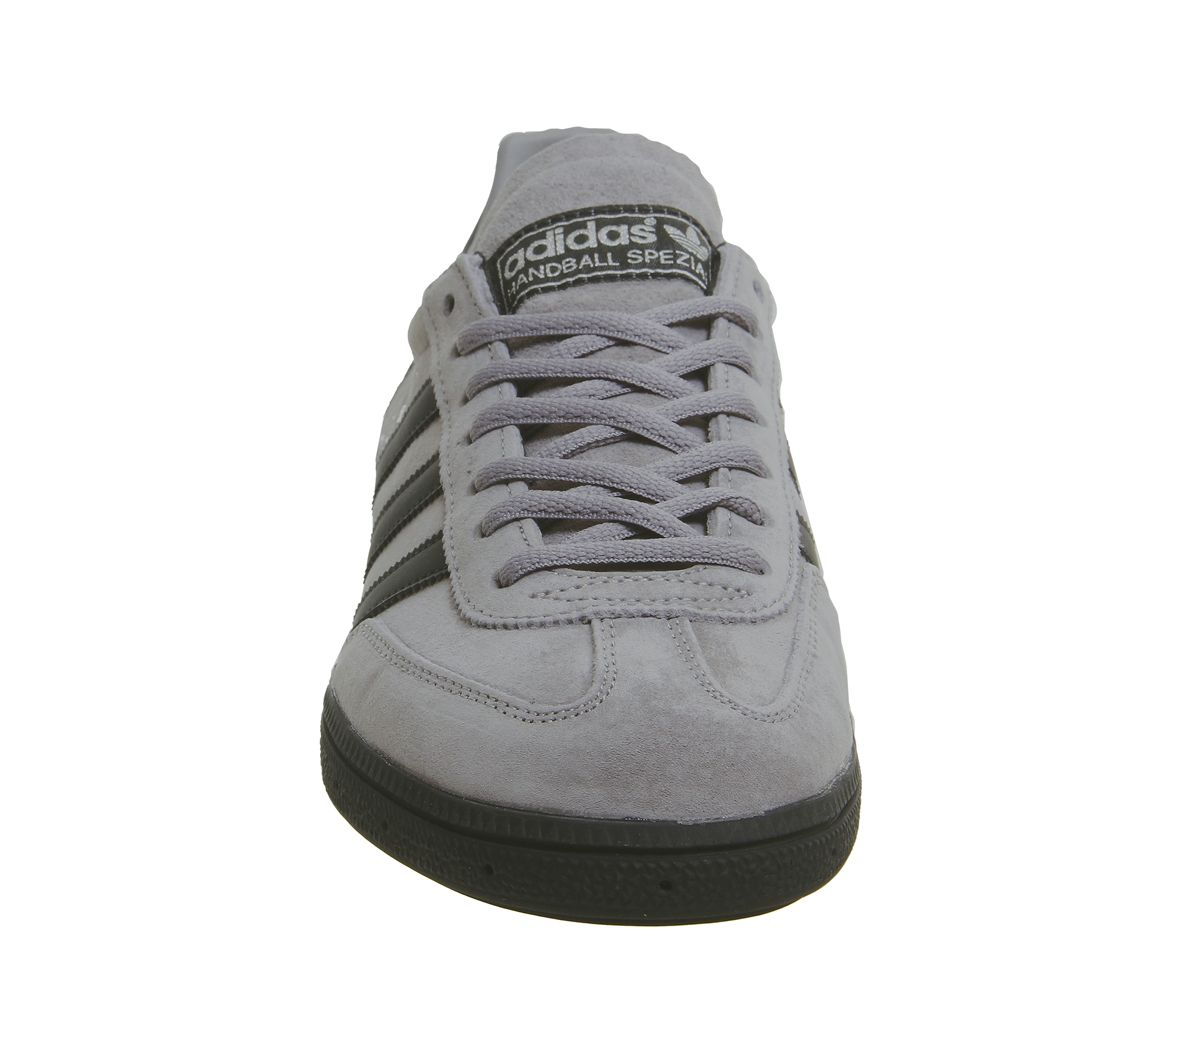 Adidas-Handball-Spezial-Trainers-Solid-Grey-Core-Black-Silver-Exclusive-Trainers thumbnail 12